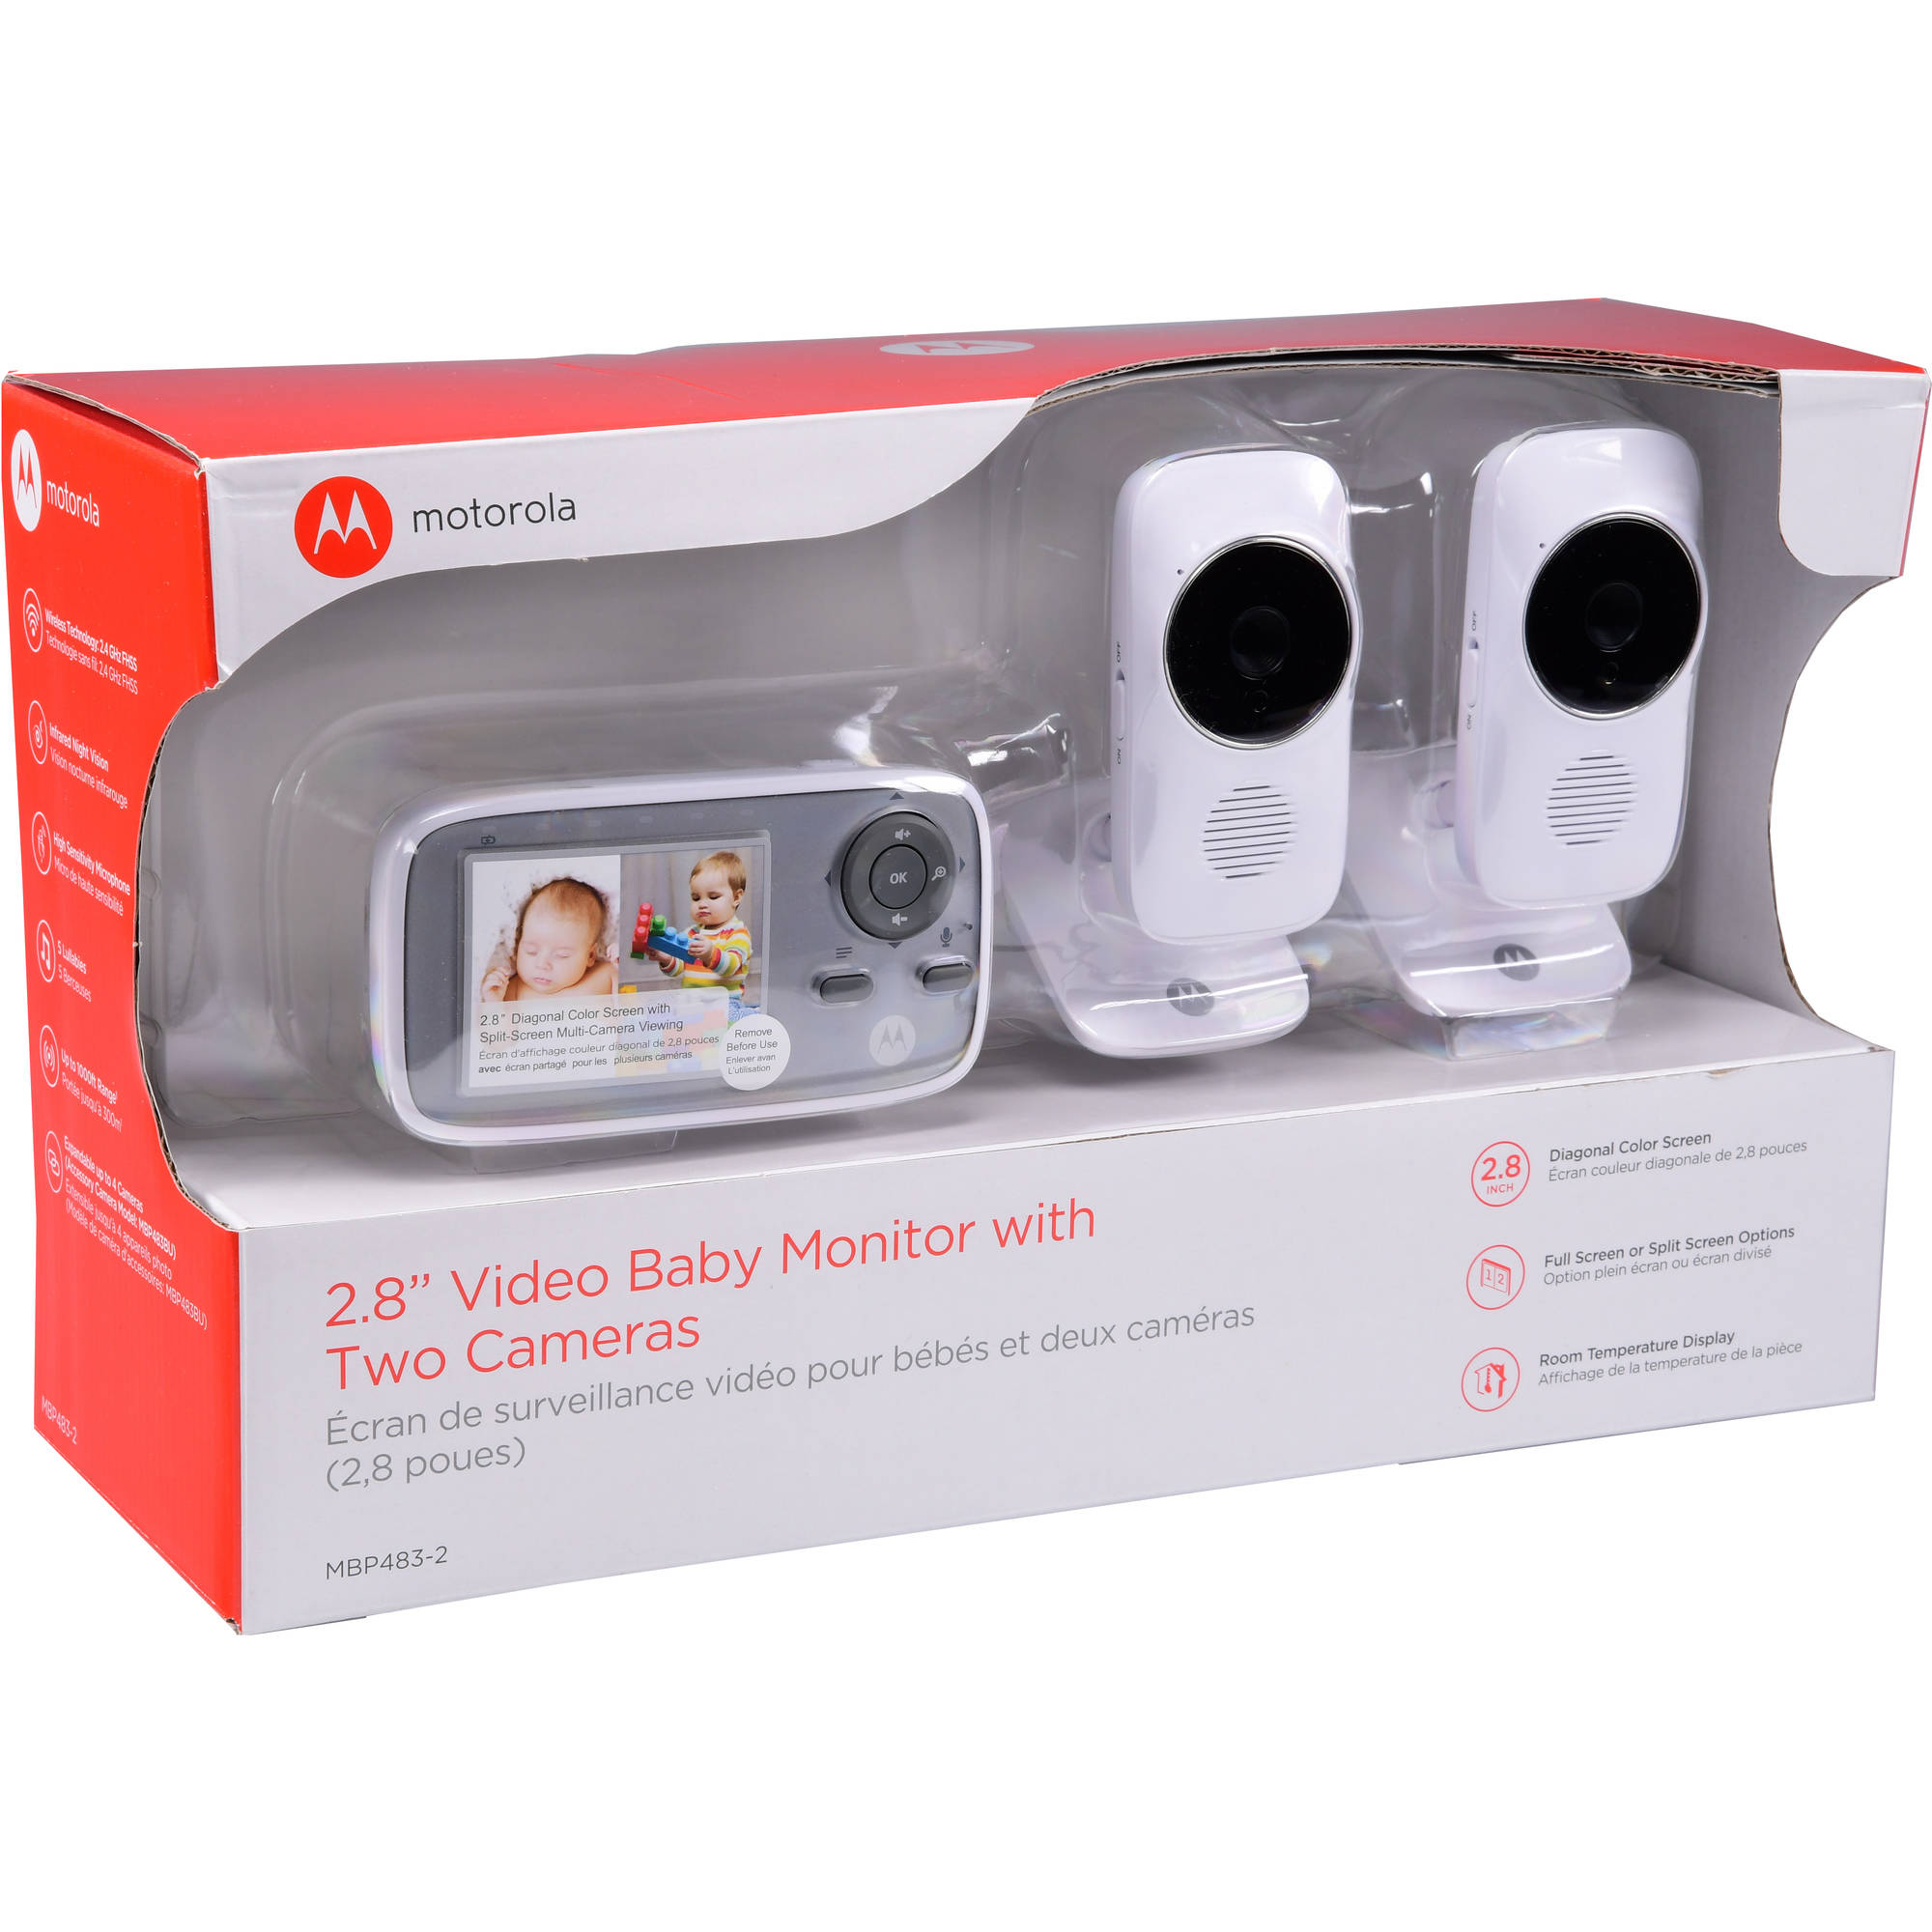 Two-Way Talk Video Baby Monitor Motorola MB483